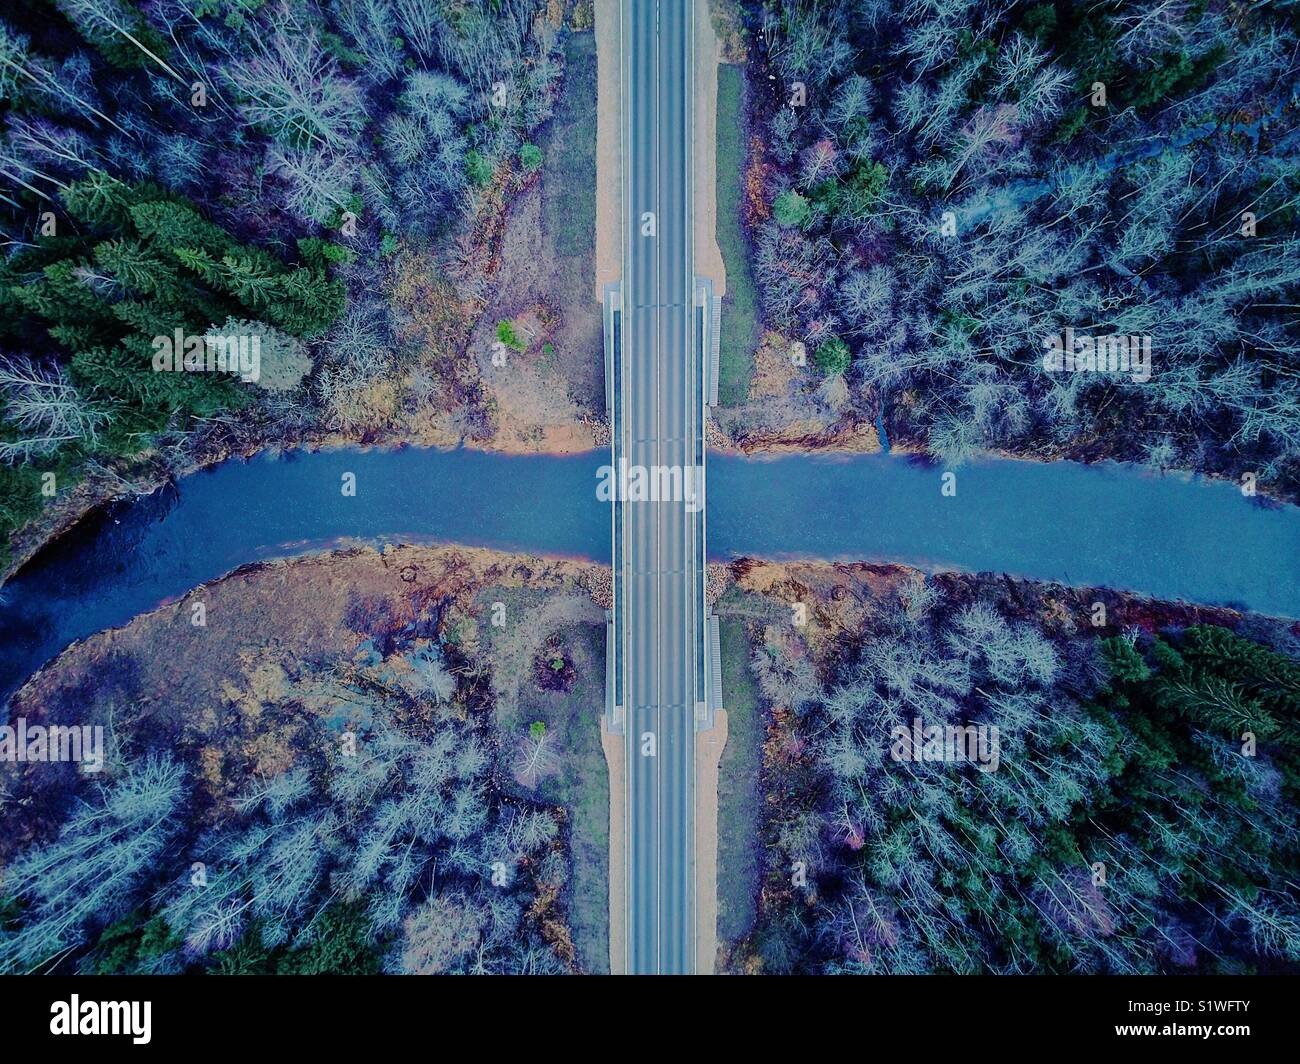 Drone picture of bridge in Latvian forest - Stock Image